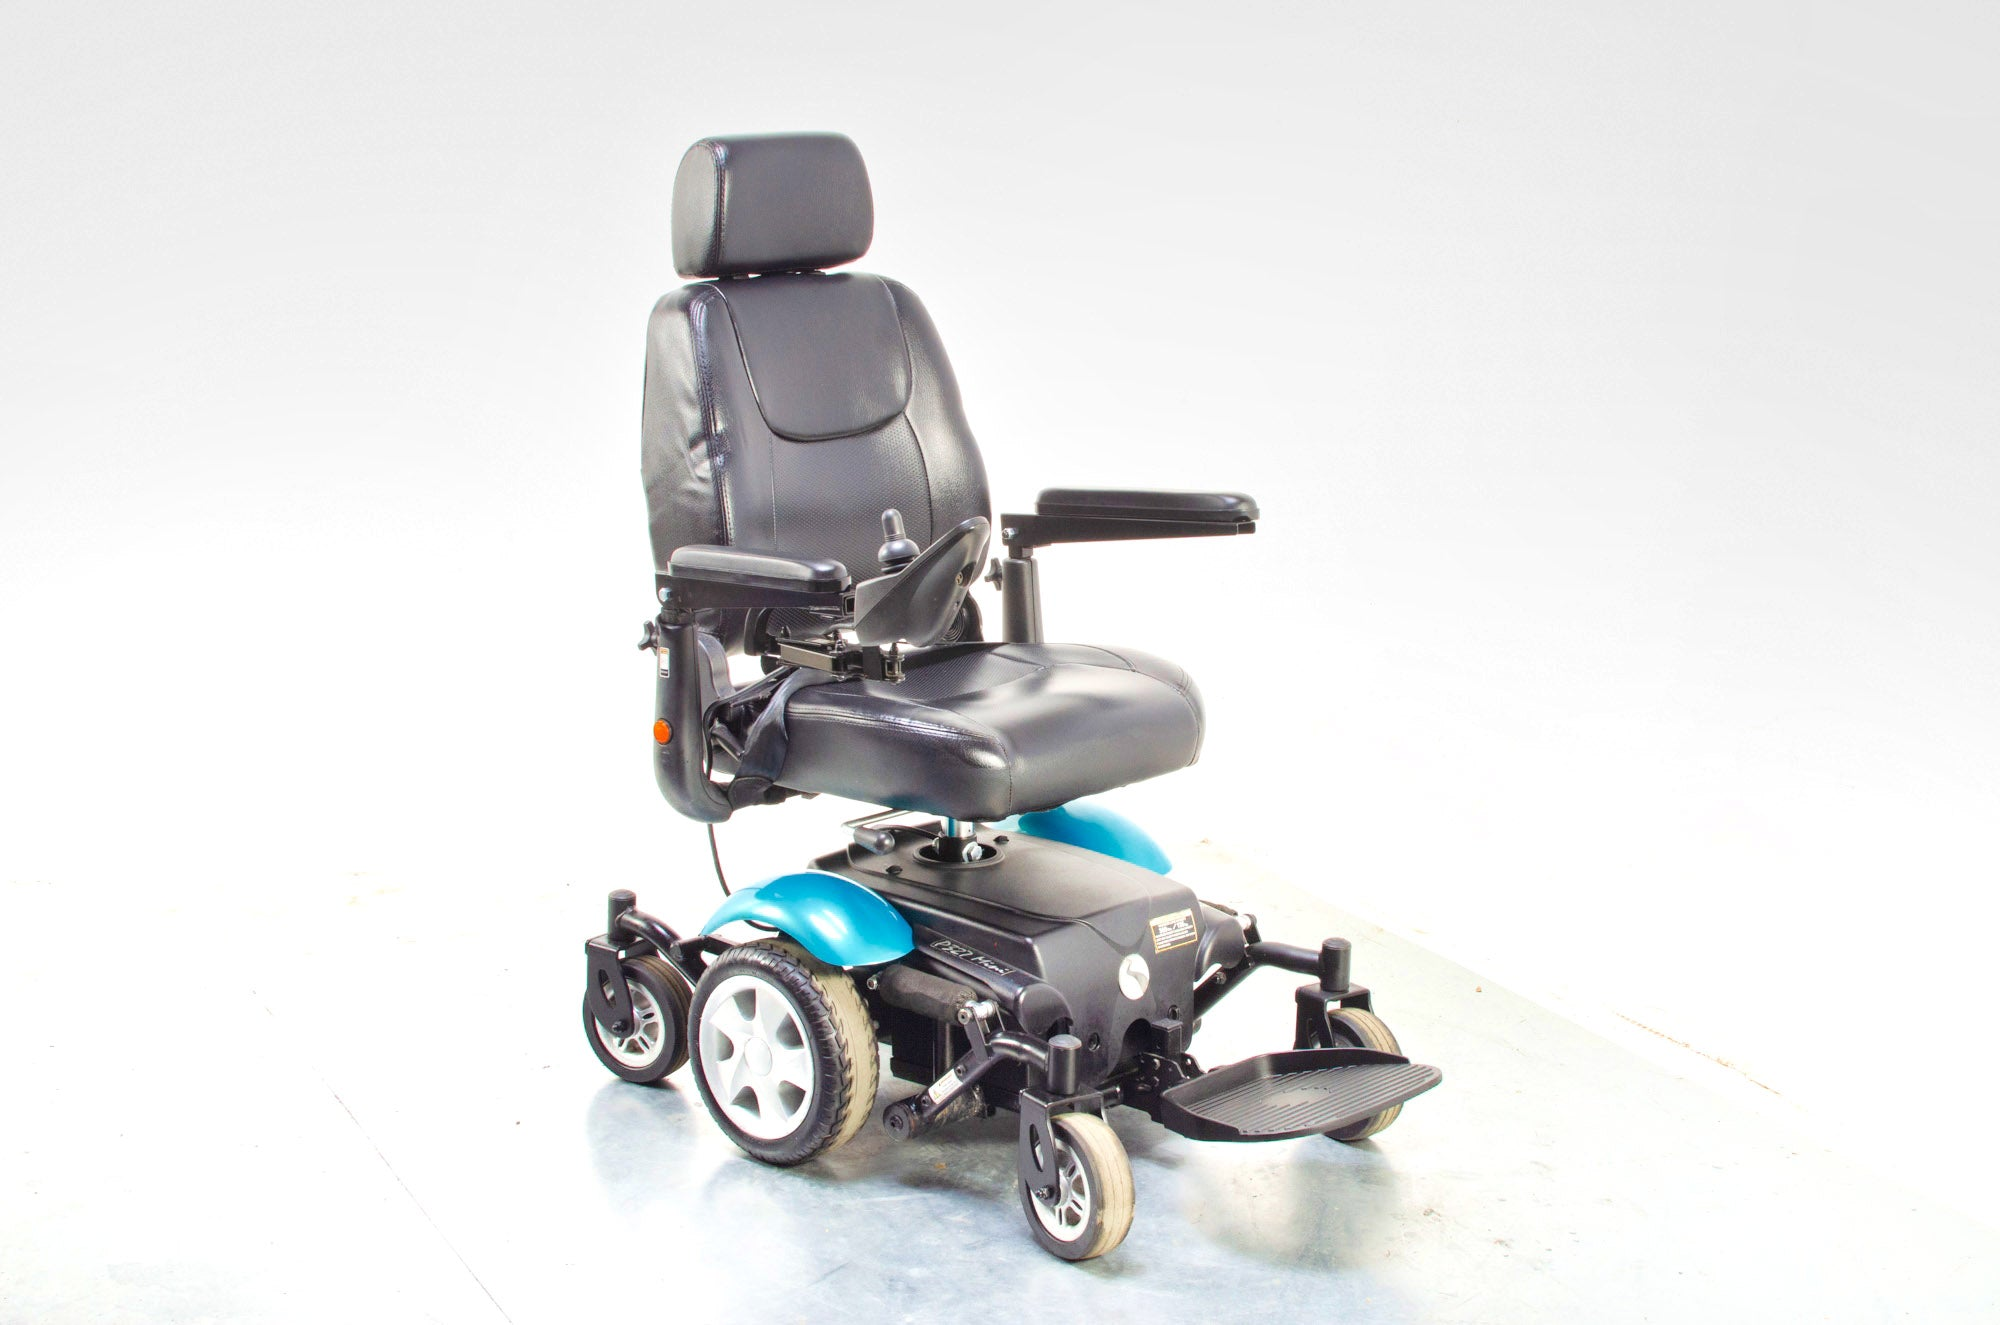 Rascal P327 Mini Electric Mobility Wheelchair Powerchair Indoor Outdoor Teal